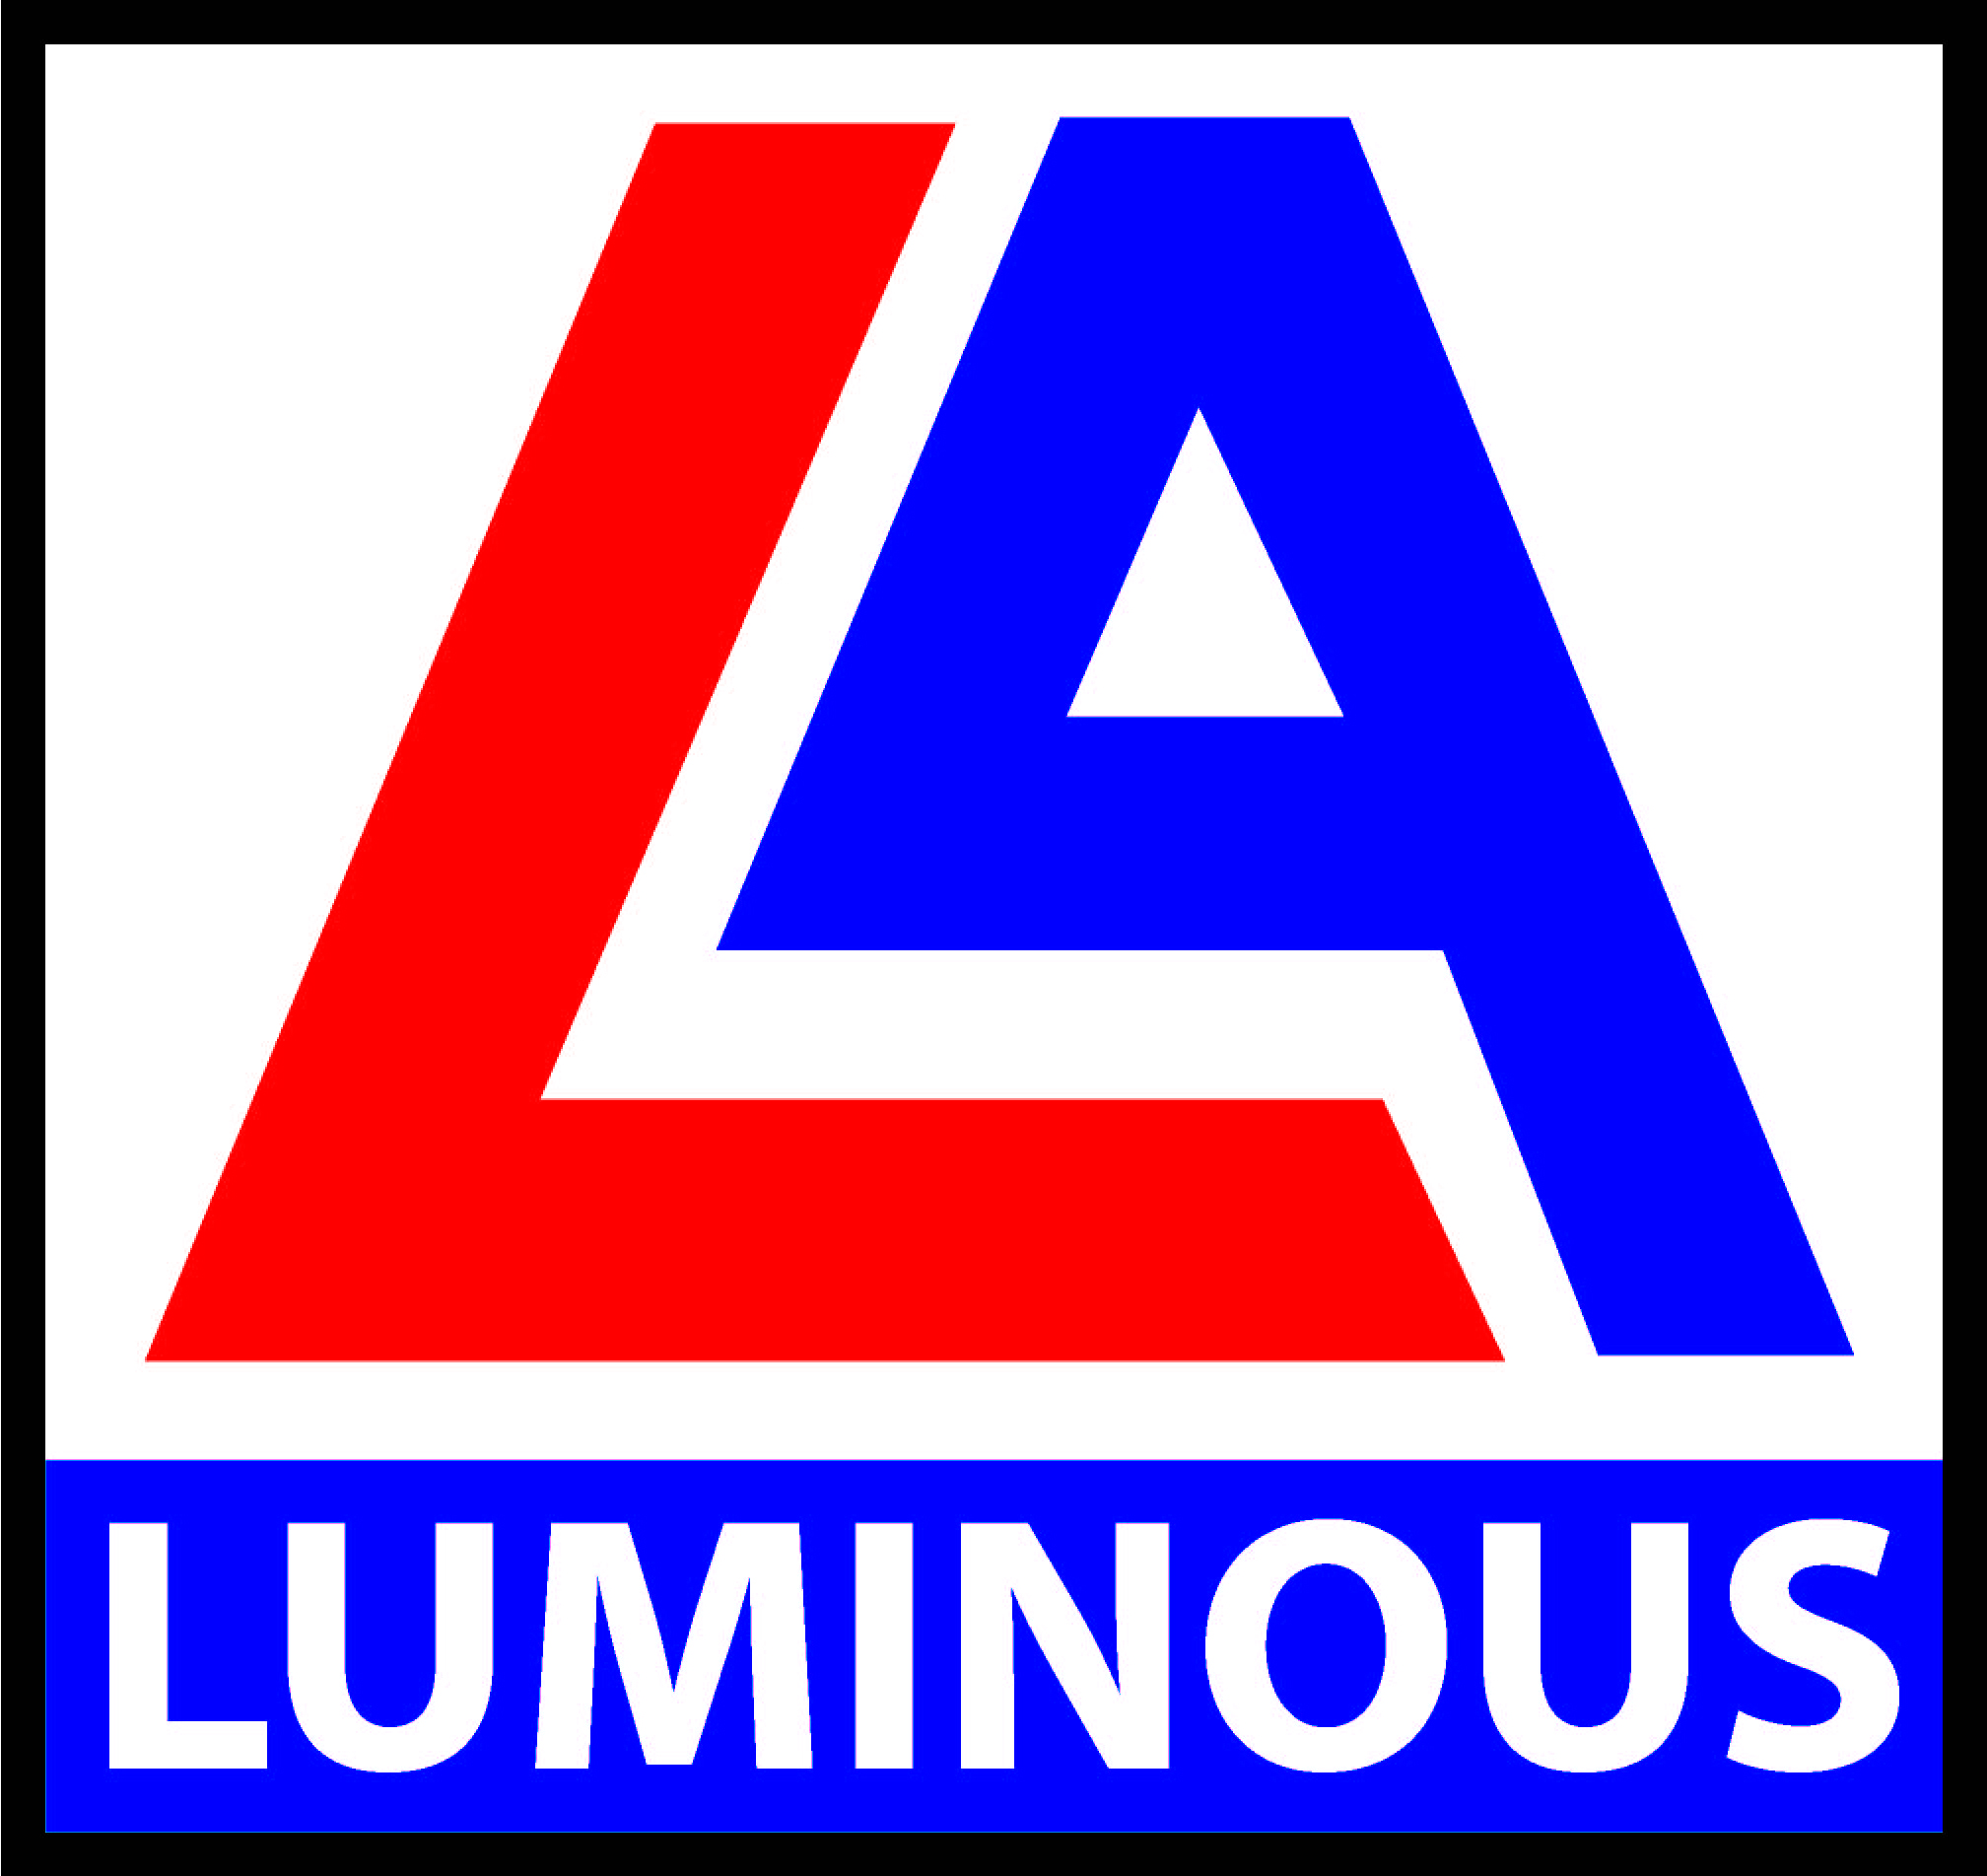 Luminous Associates.jpg